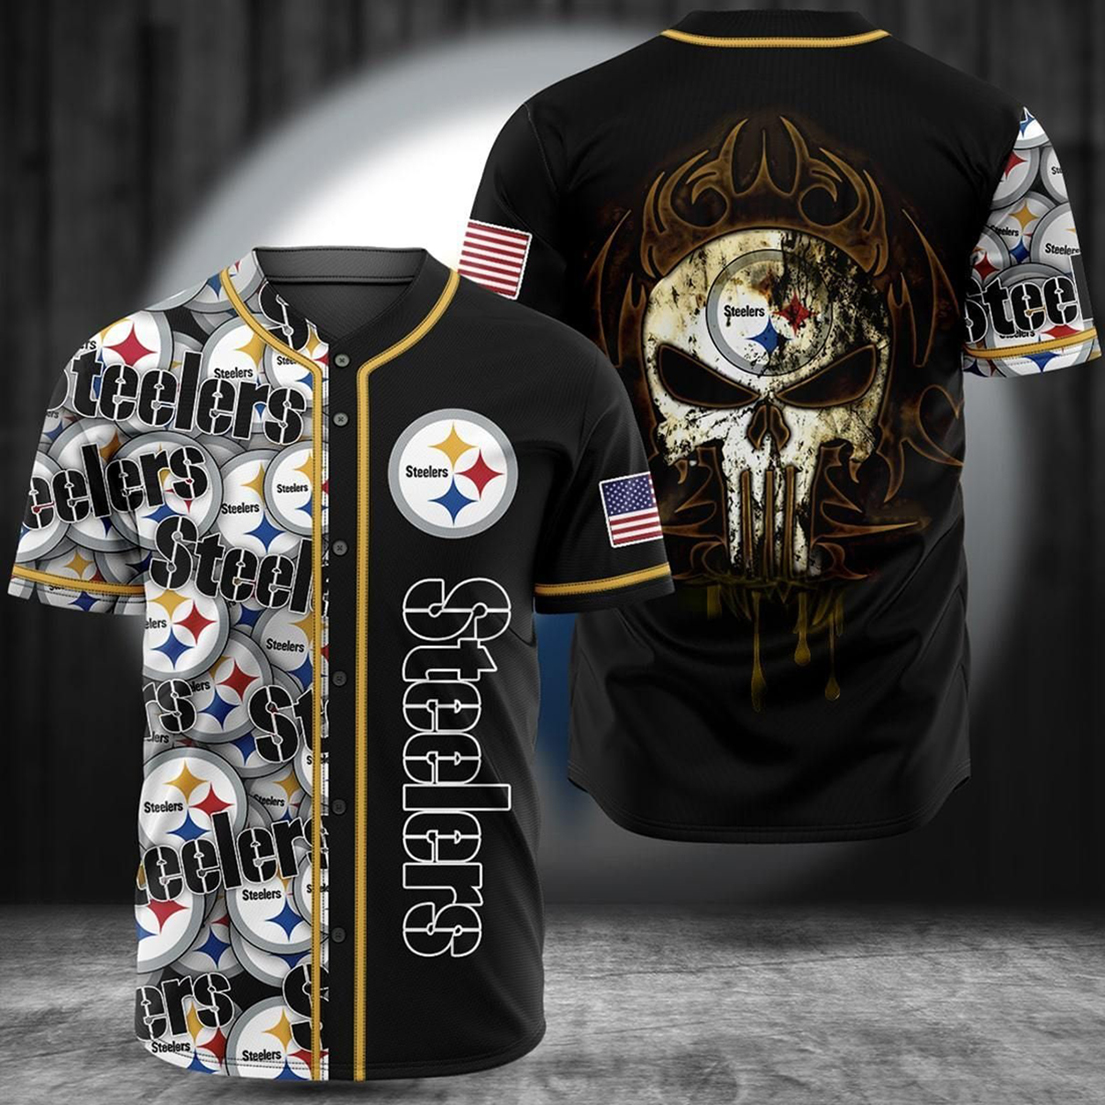 Pittsburgh steelers punisher skull jersey shirt - Picture 1